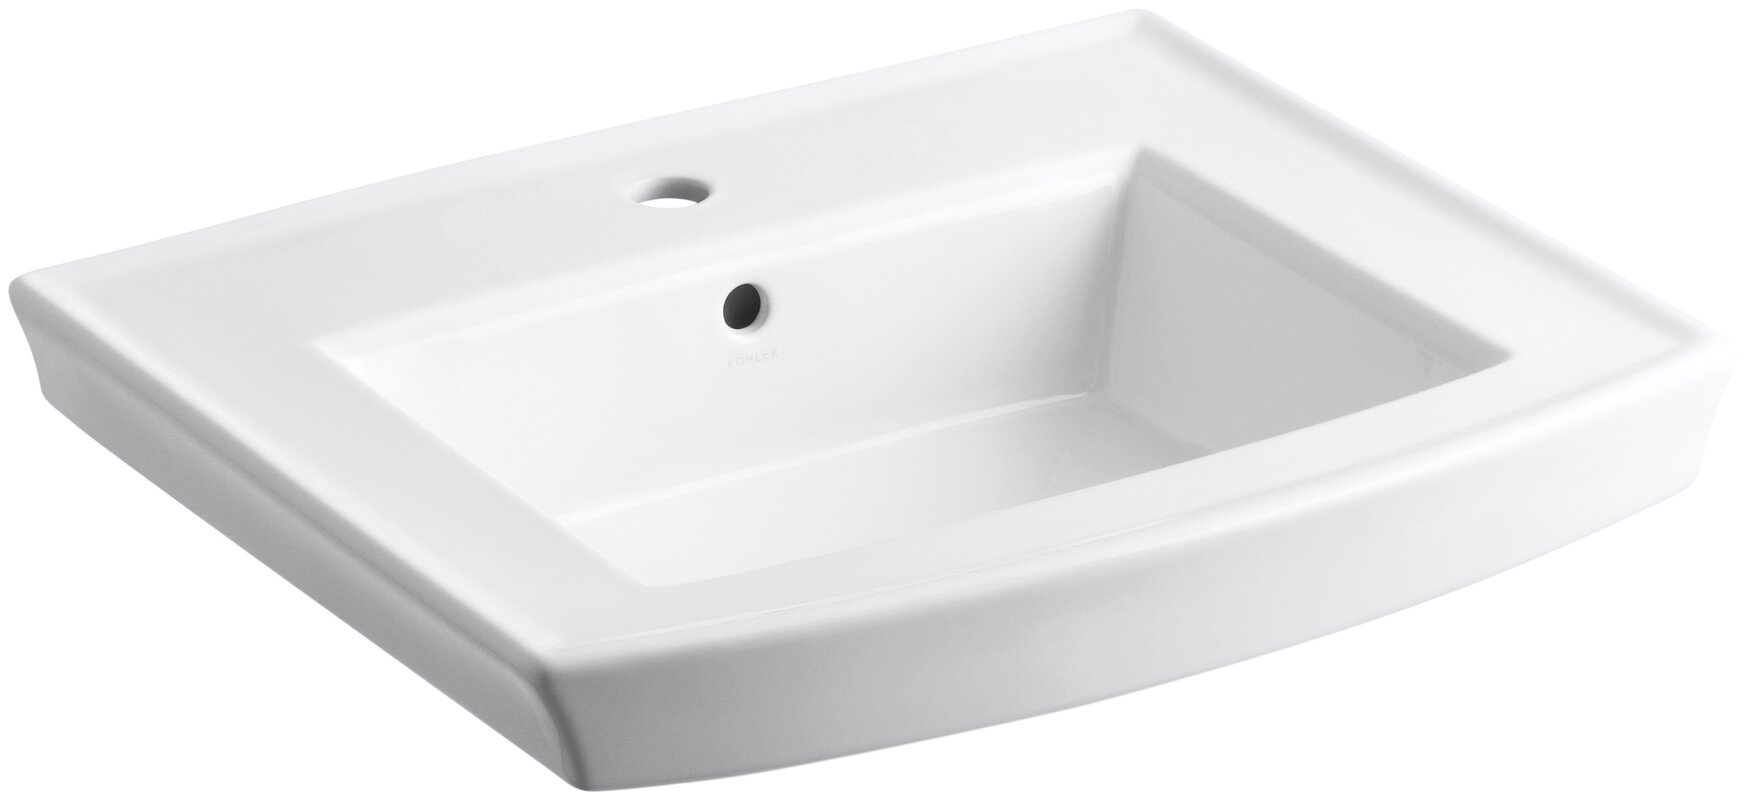 bathroom town standard sinks b sink inch pedestal white american square